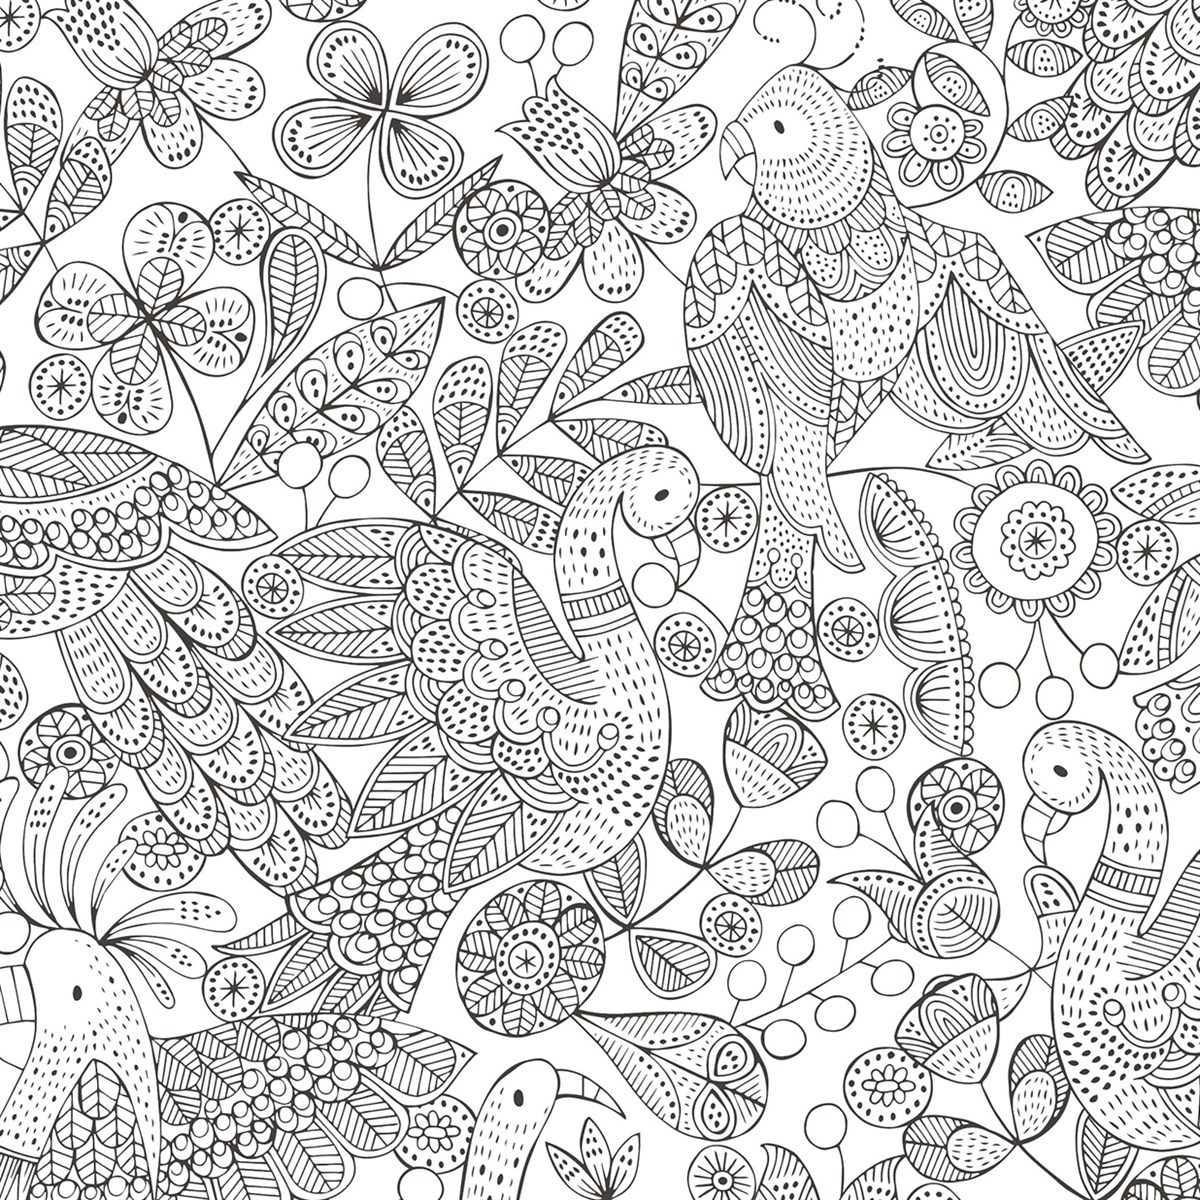 colouring in wrapping paper online sales, gift shops in bude, where can I get colouring in wrapping paper in bude cornwall, what is the costume rooms in bude